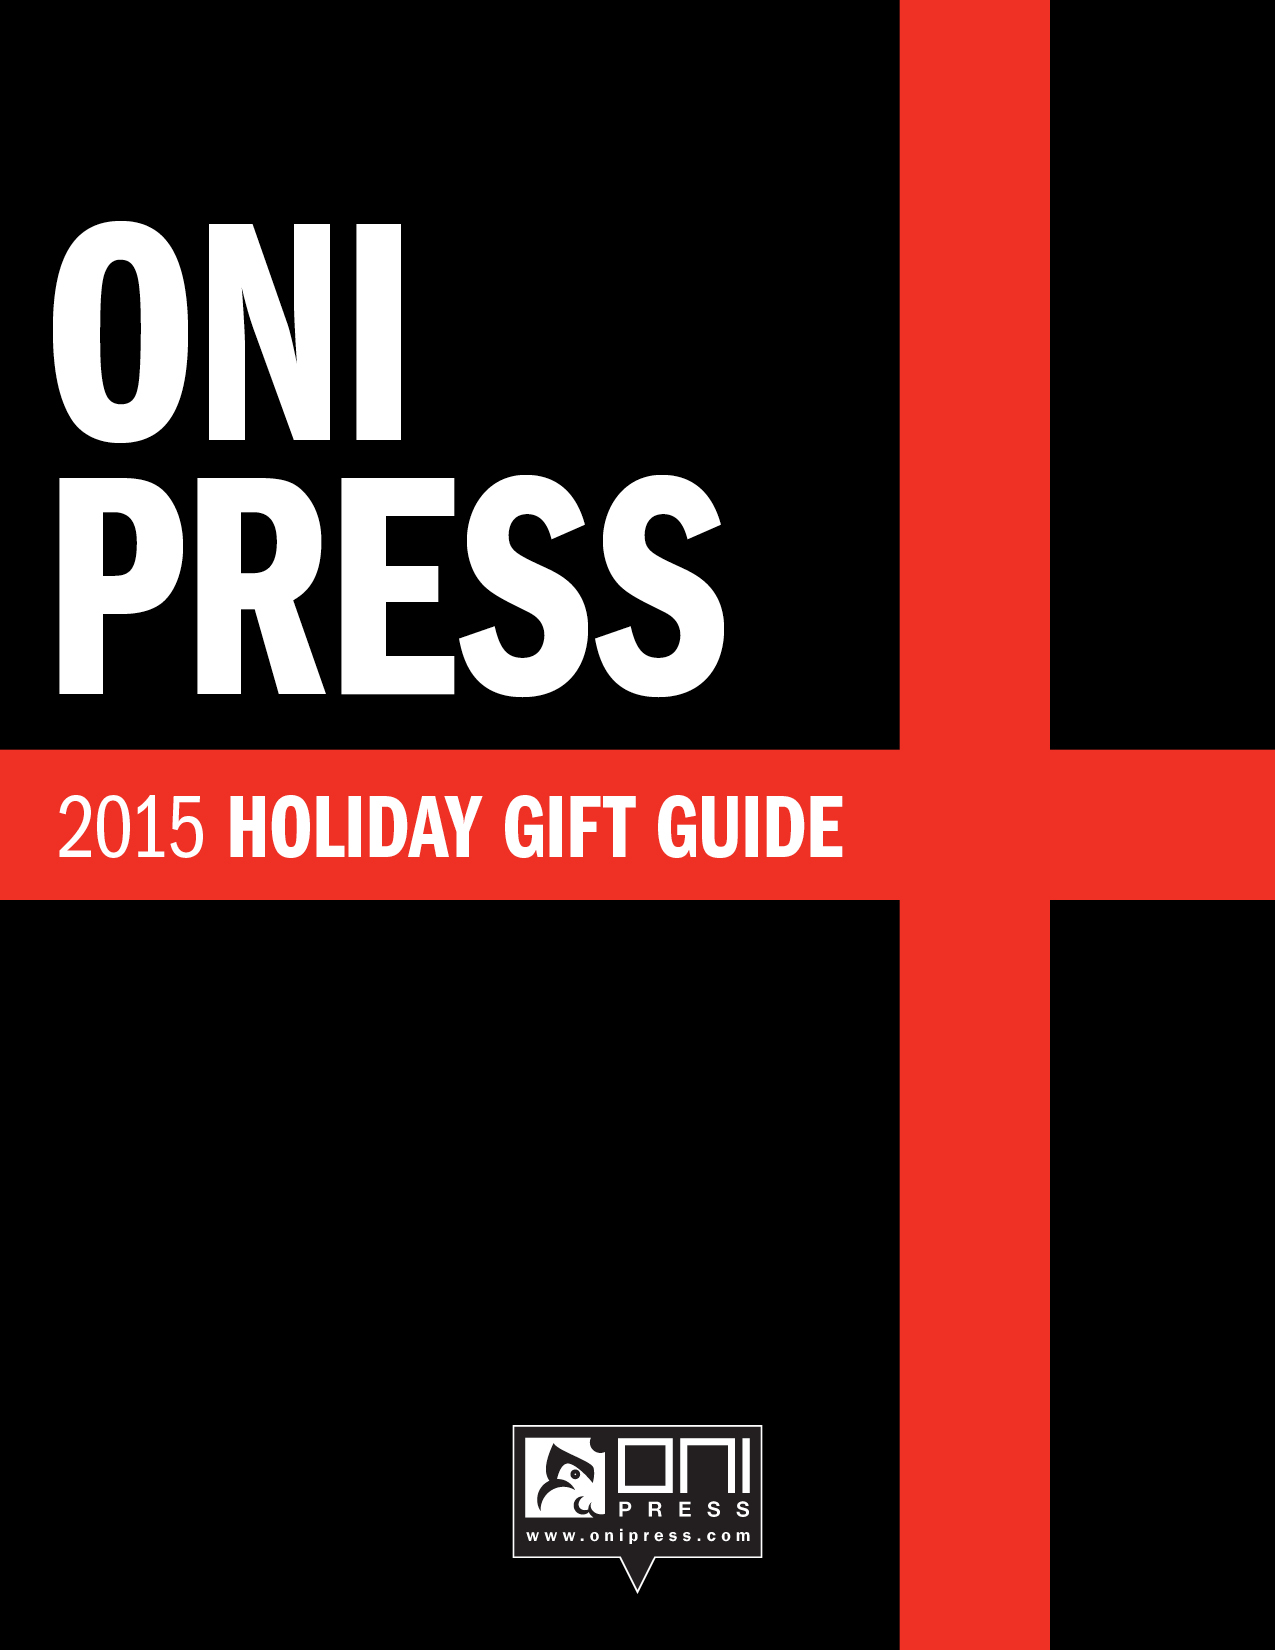 onipress :     We at Oni Press know how incredibly difficult it is to shop for friends and family around the holidays. There's always that second cousin twice removed with fuzzy interests, the sister-in-law that sorta likes knitting (or was it deep-sea fishing?), or the office co-worker who hasn't updated their Facebook like pages in a million years. How are you supposed to get them a gift if they won't update their Facebook like pages?!?    Well, fret no longer because Oni Press is providing you with the ULTIMATE HOLIDAY GIFT GUIDE!    Keep reading